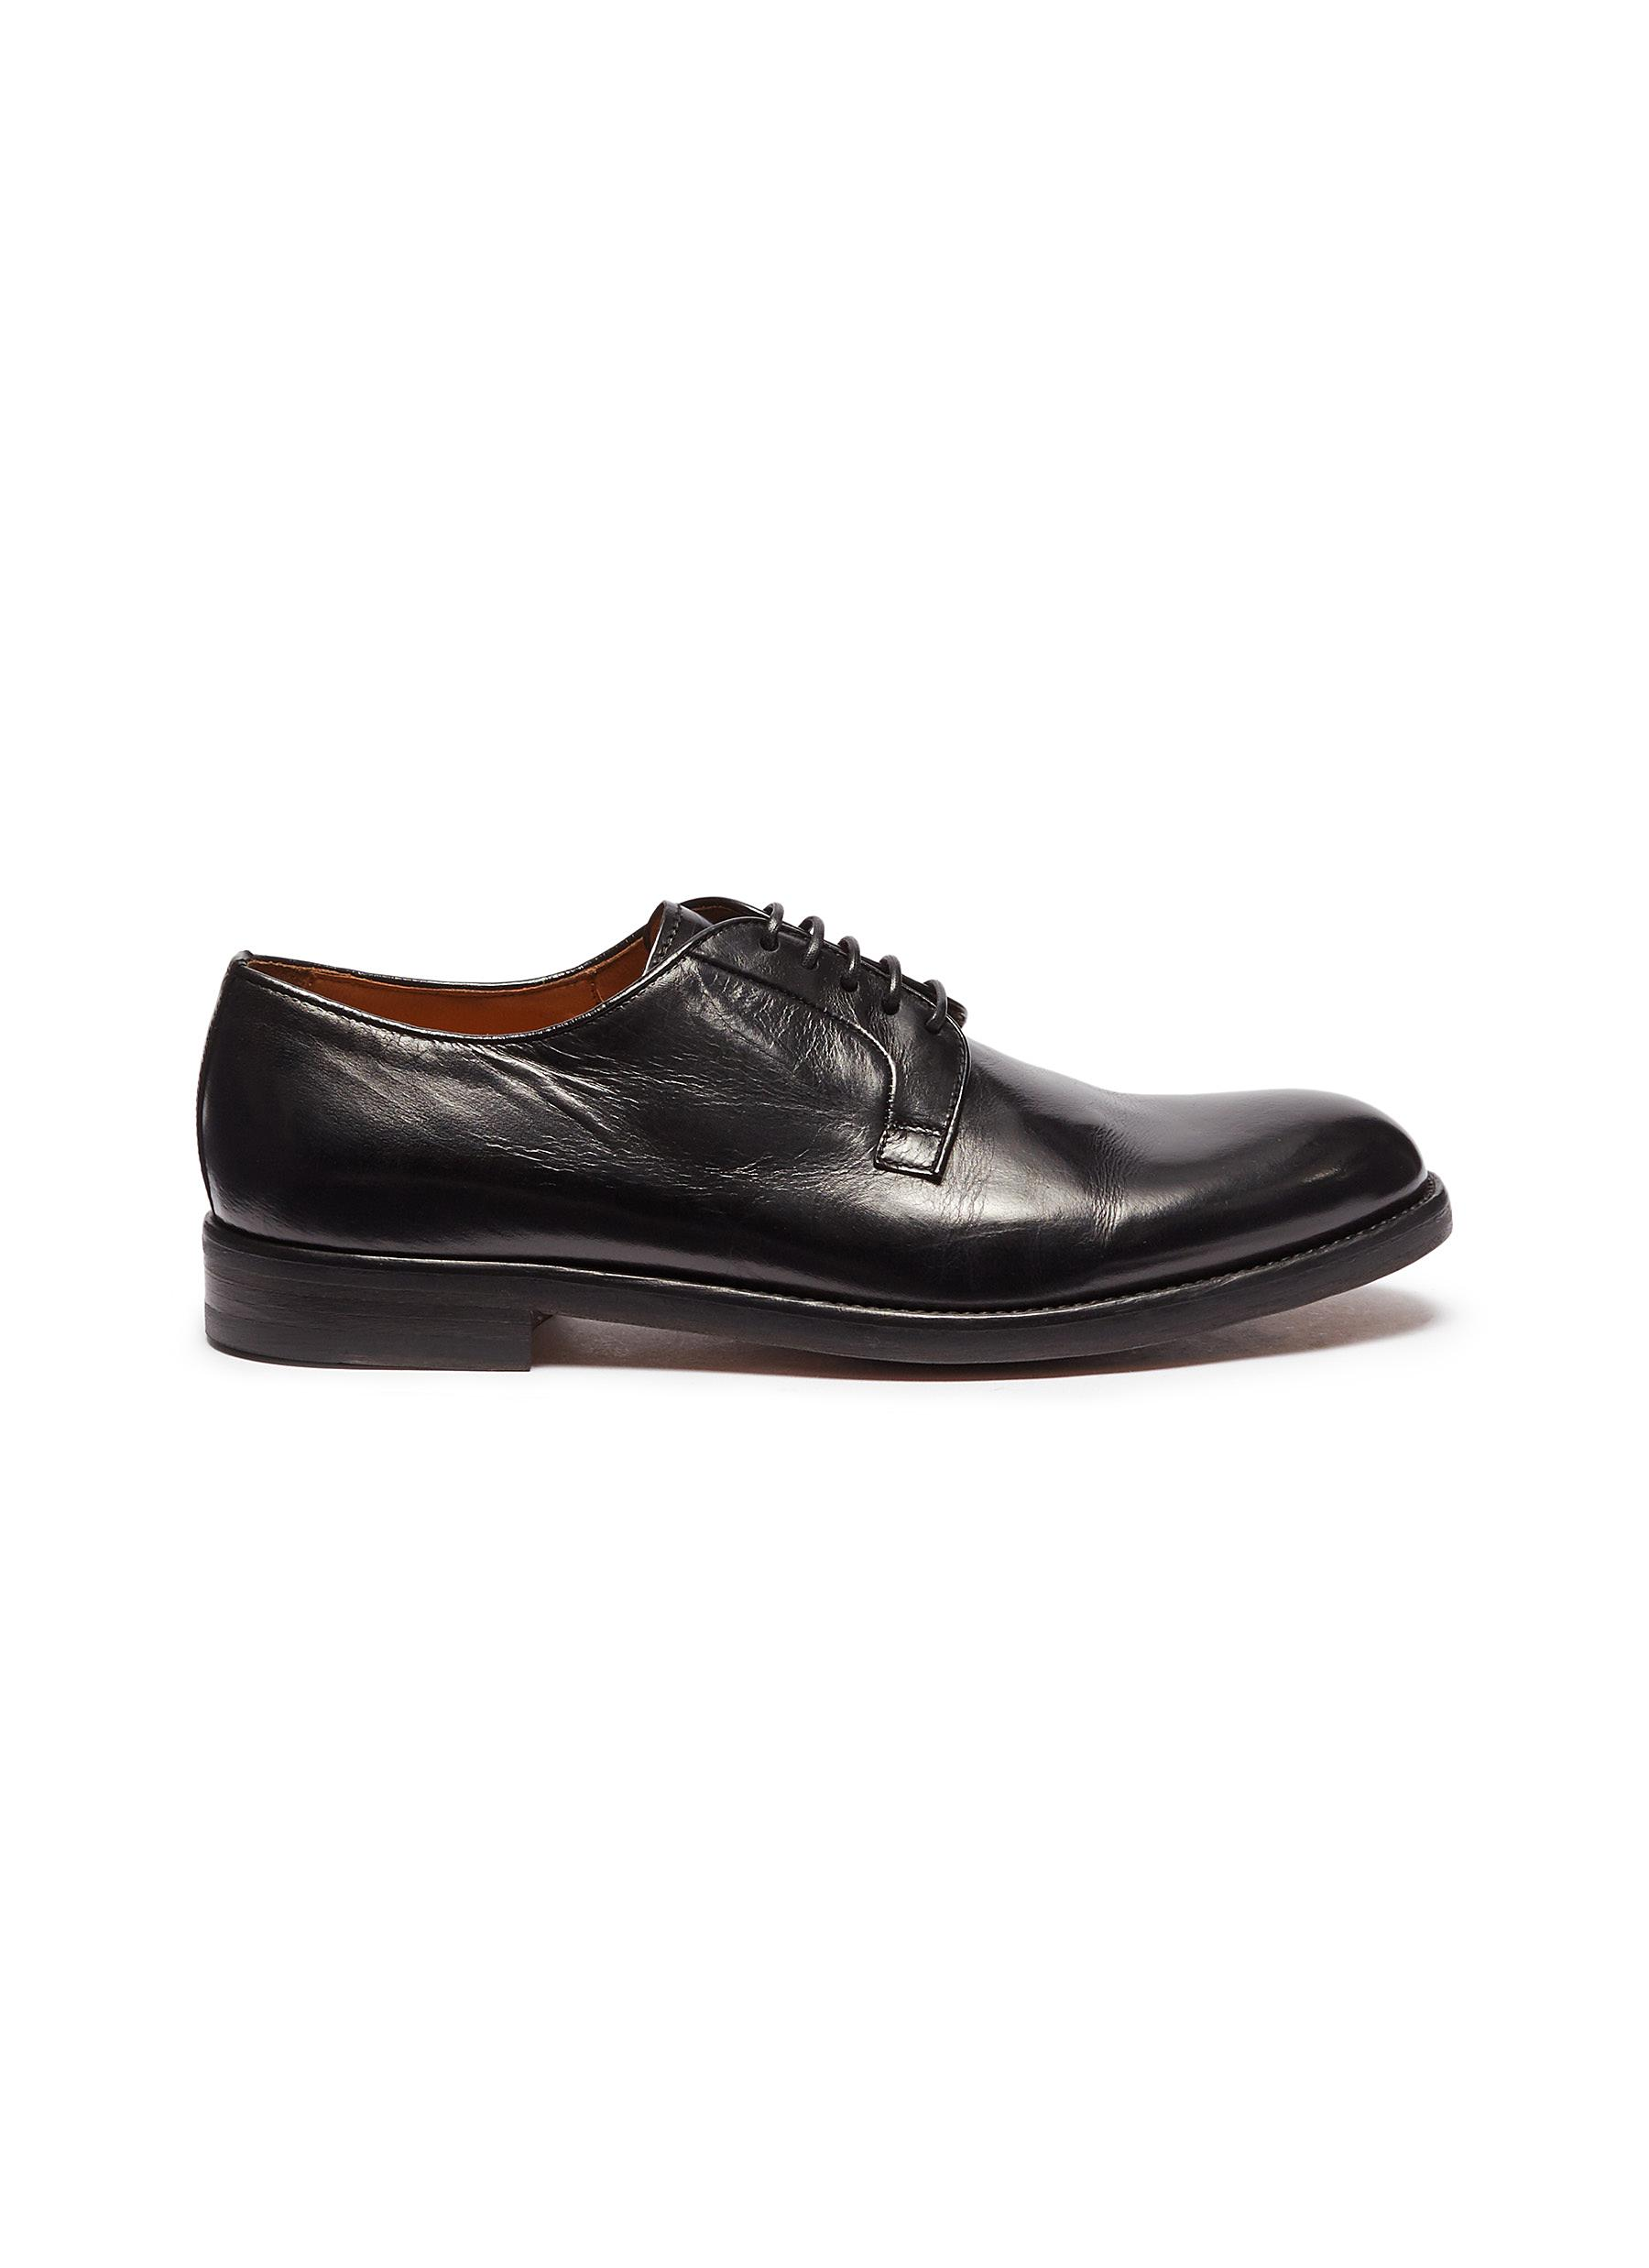 Polo Leather Derbies by Doucal's